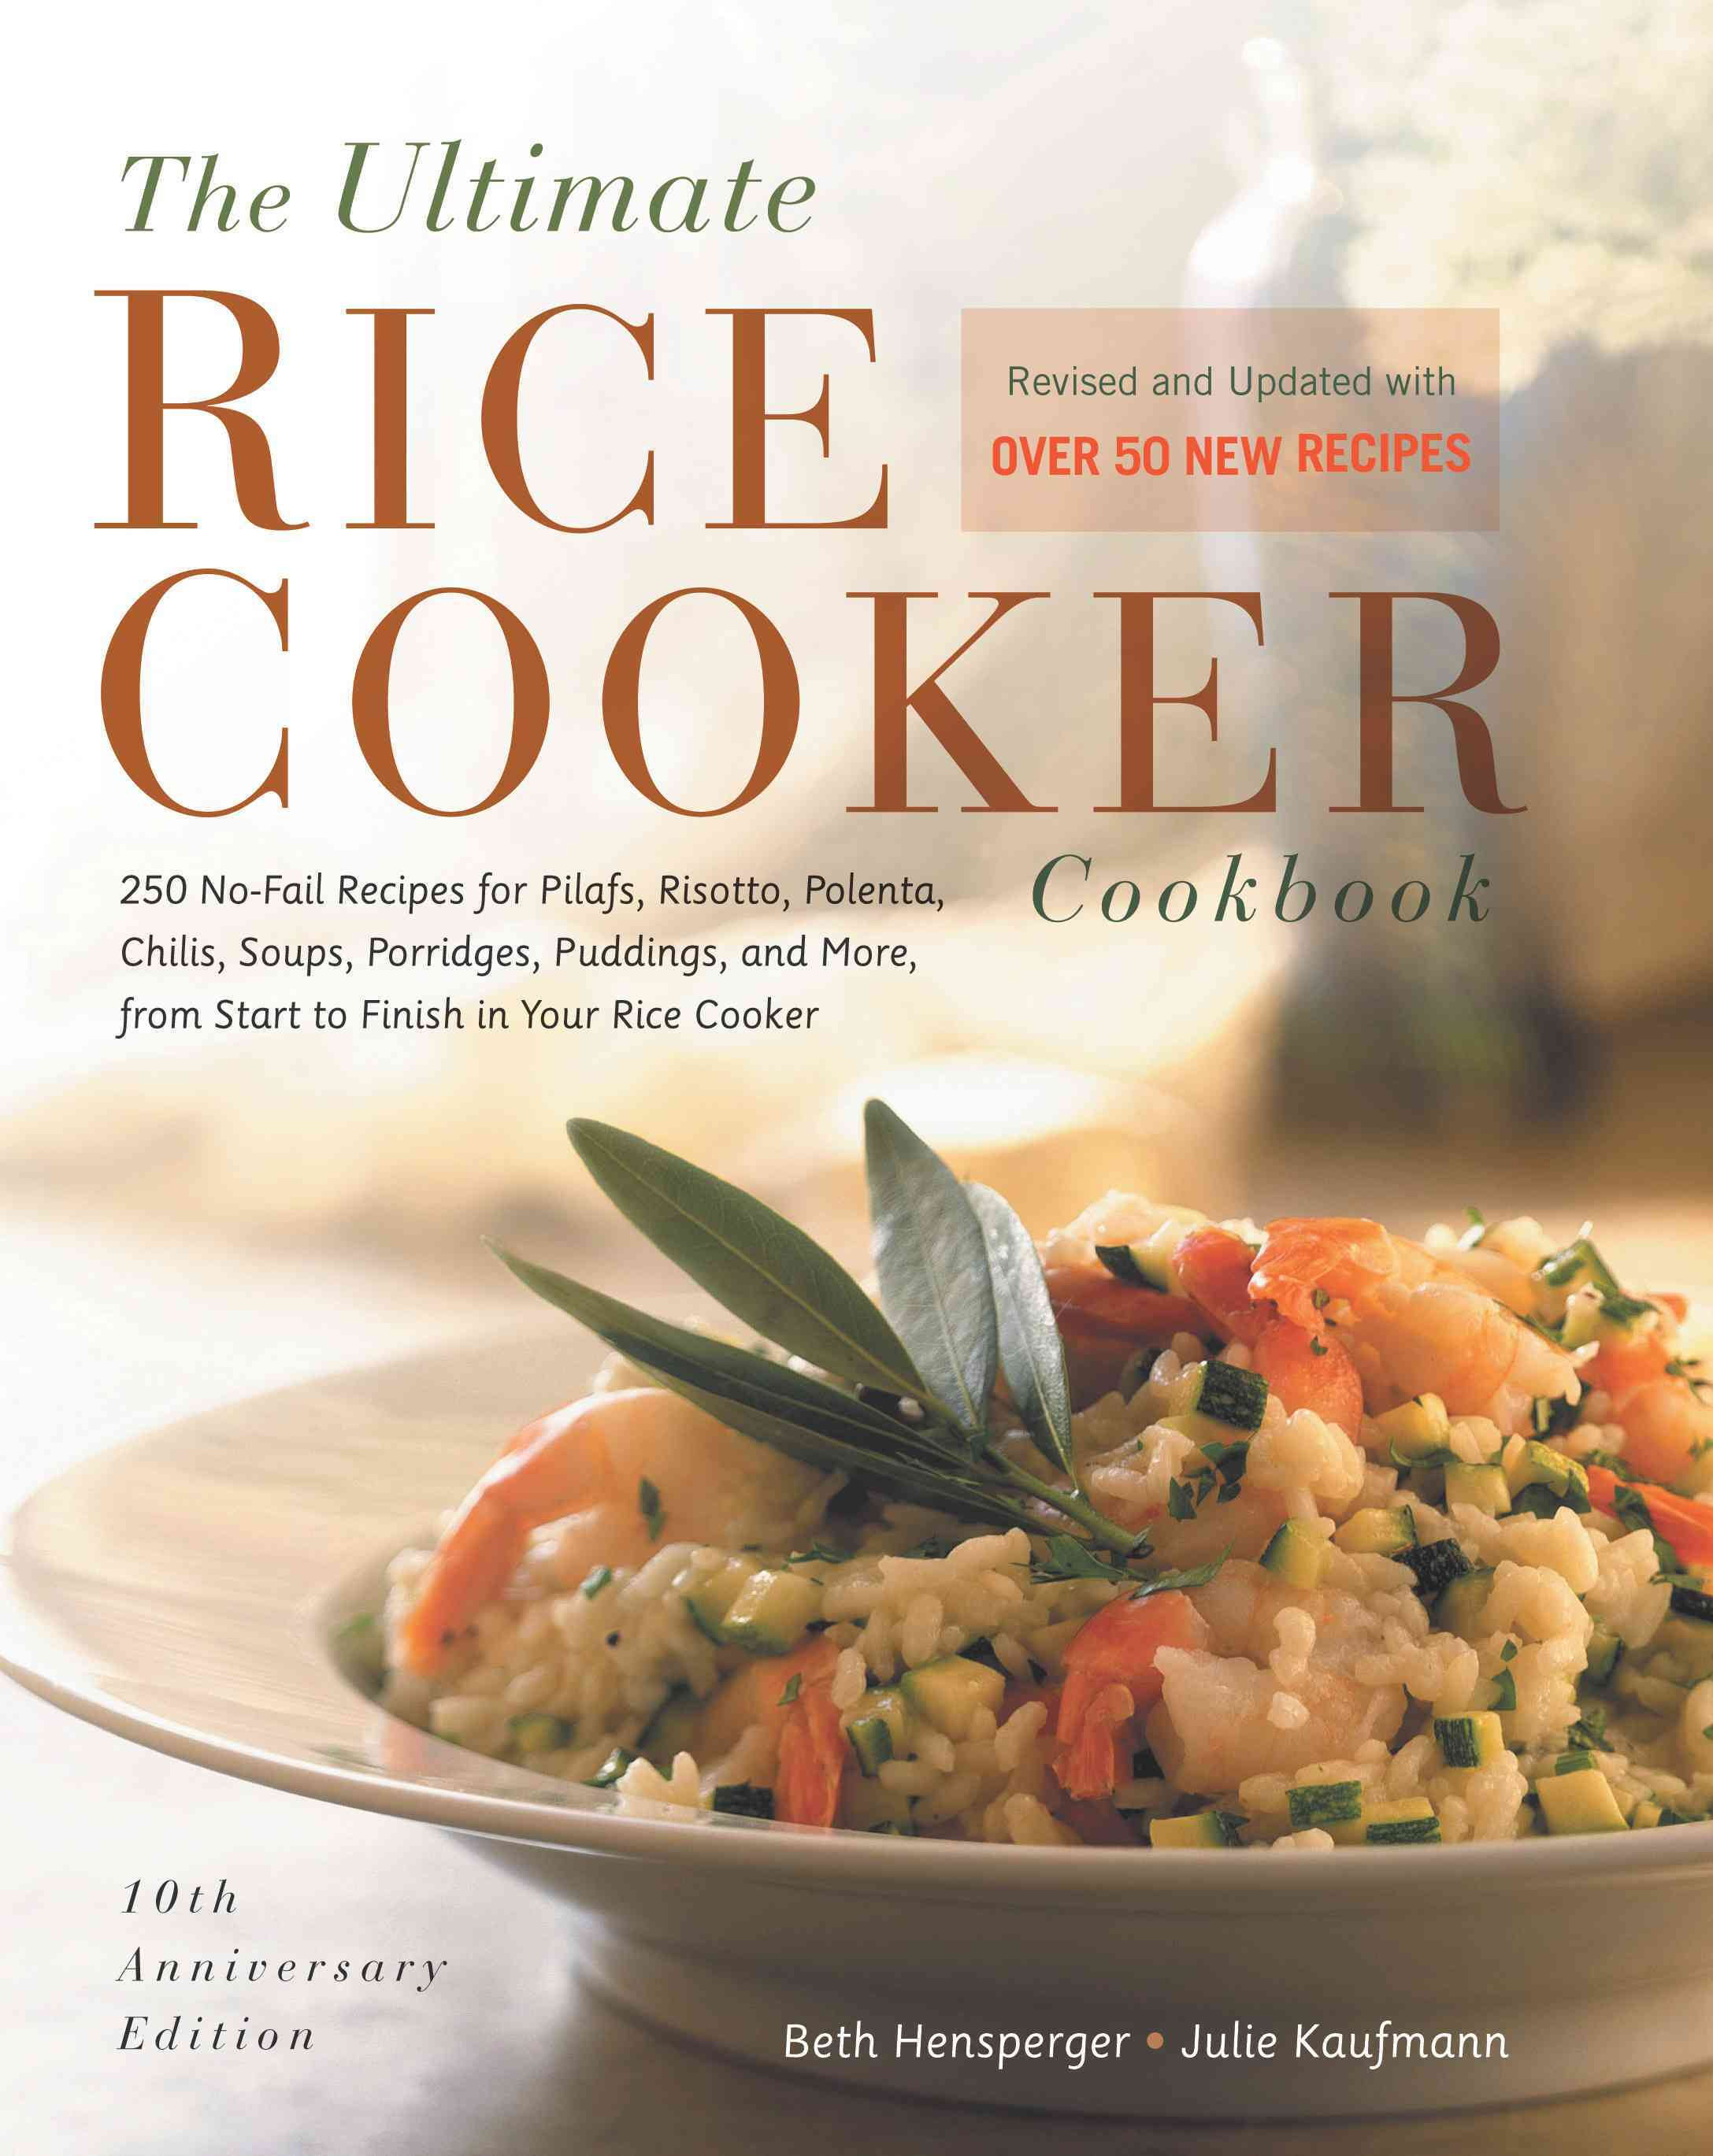 The Ultimate Rice Cooker Cookbook: 250 No-Fail Recipes for Pilafs, Risottos, Polenta, Chilis, Soups, Porridges, P... (Paperback) - Thumbnail 0